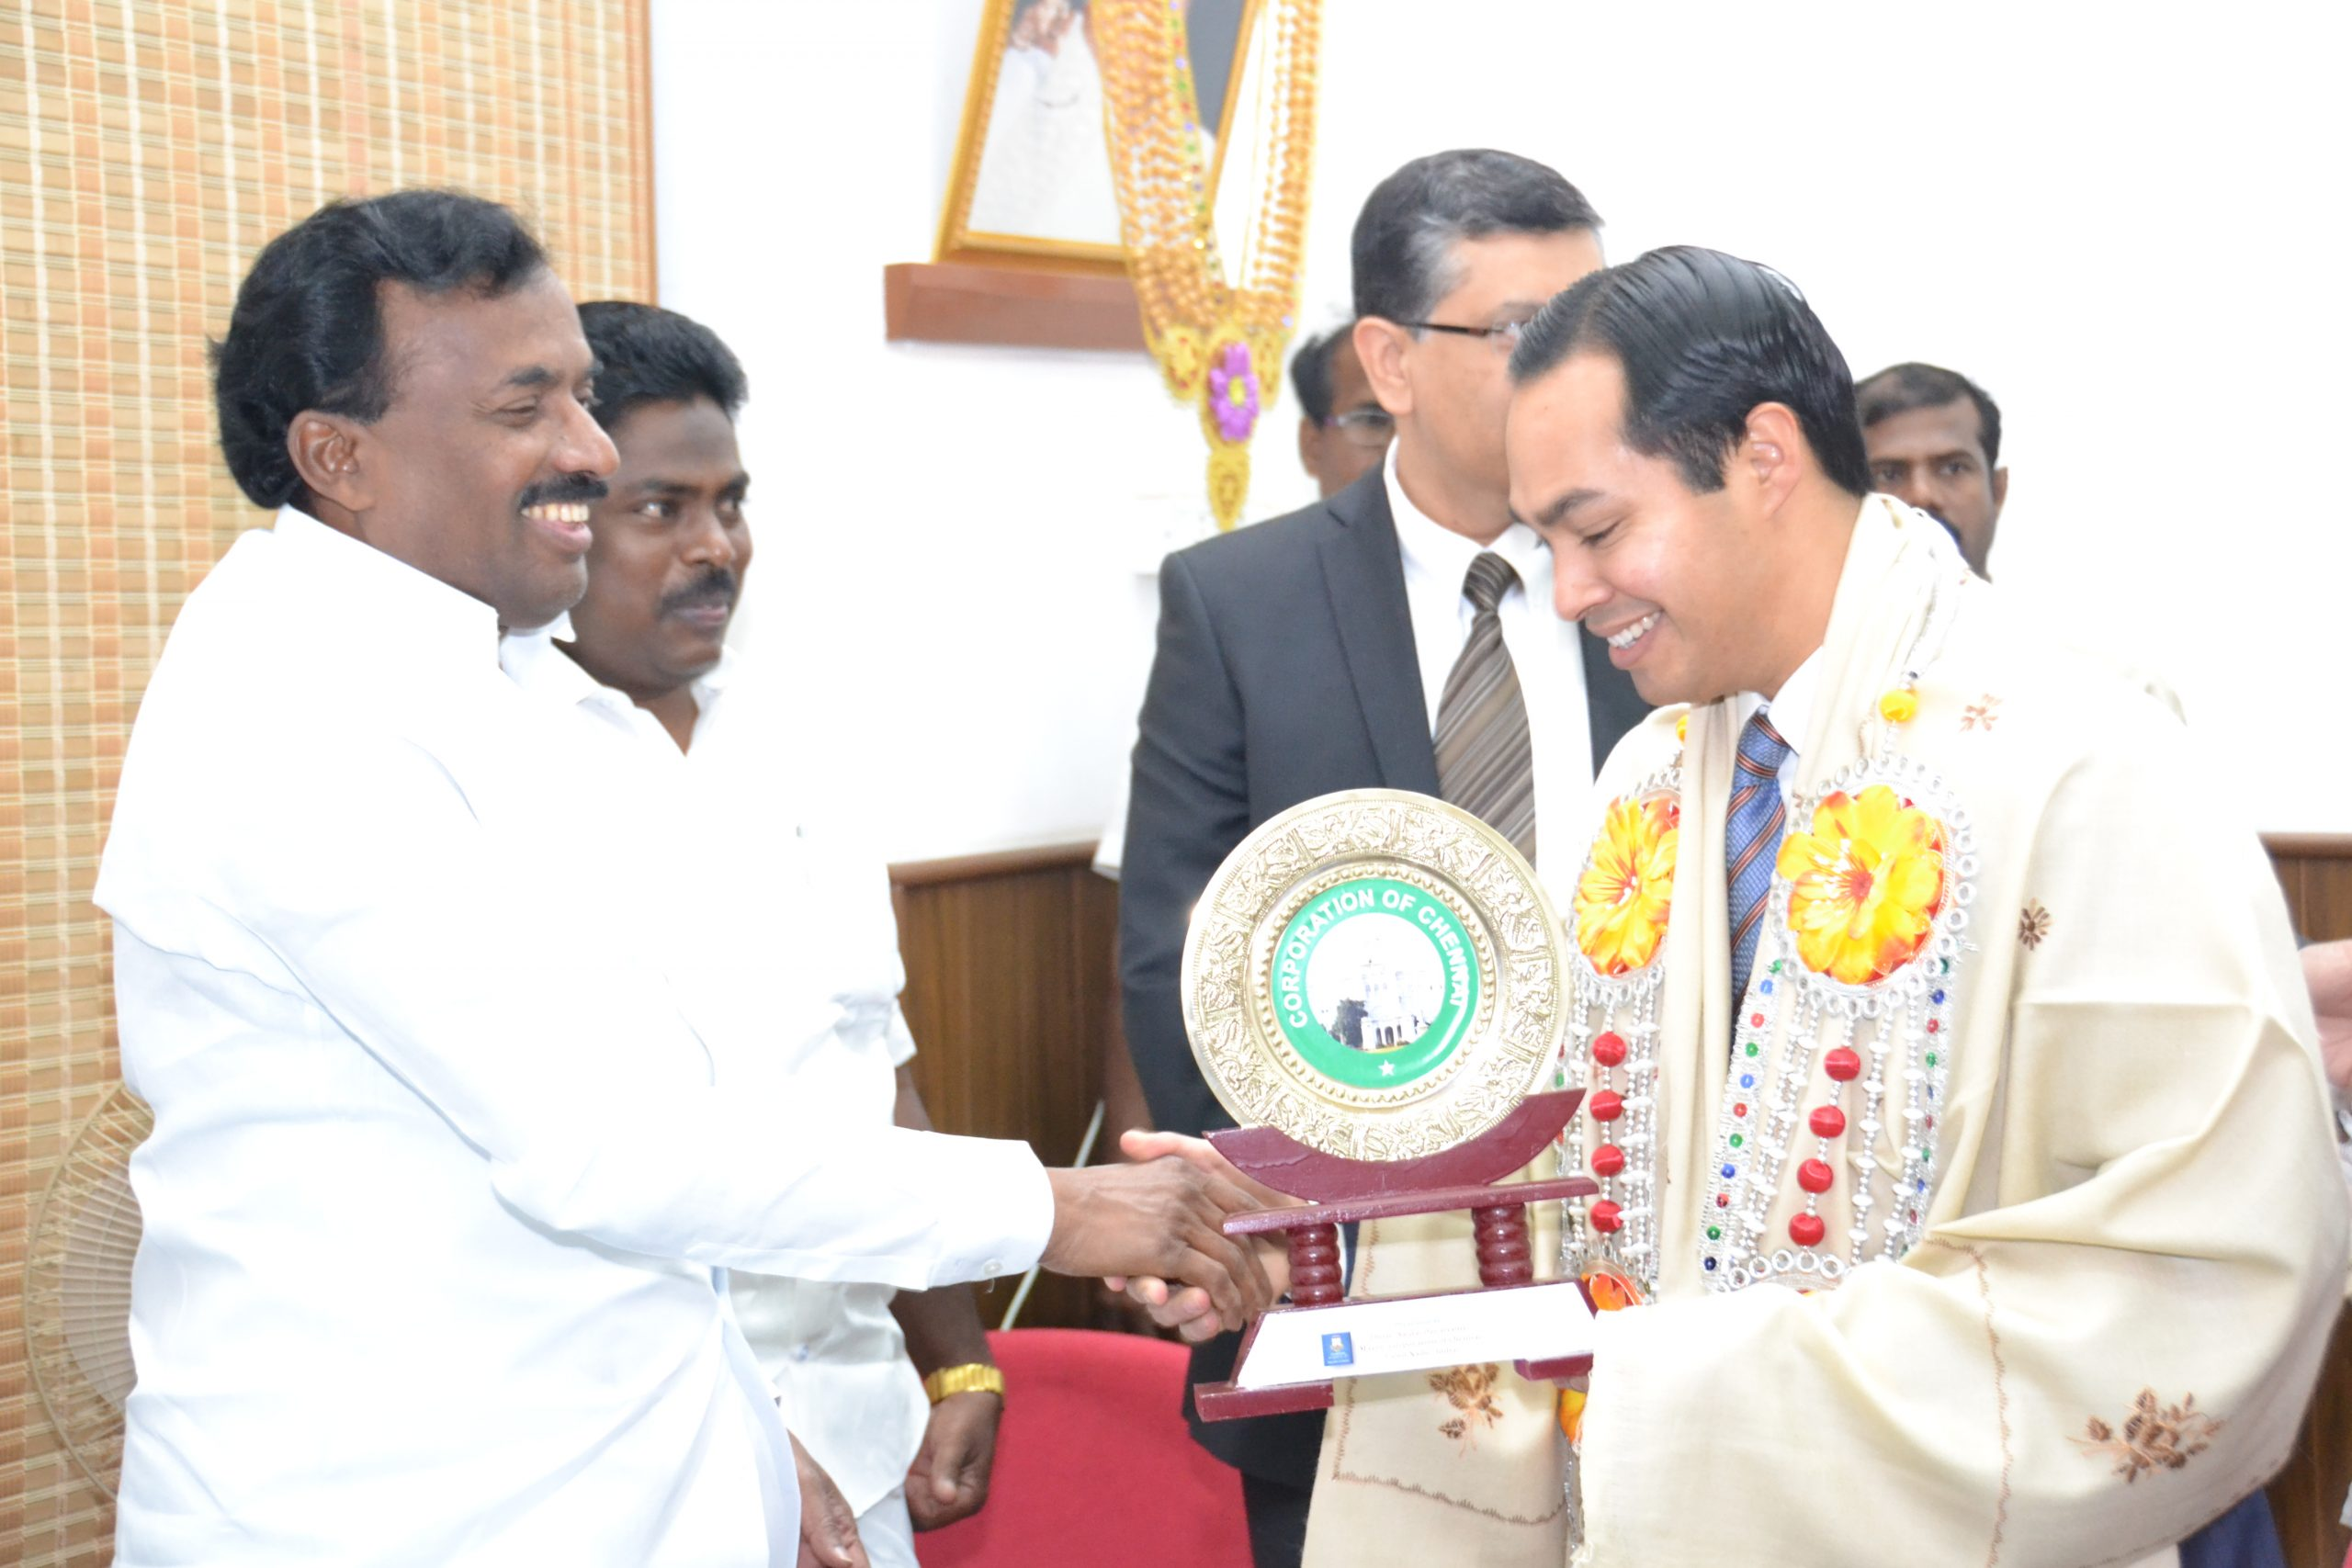 Mayor Julián Castro during an official greeting with Channai, India Mayor Saidai S. Duraisamy in Chennai's government offices earlier this year. Photo courtesy of the International Relations Office.